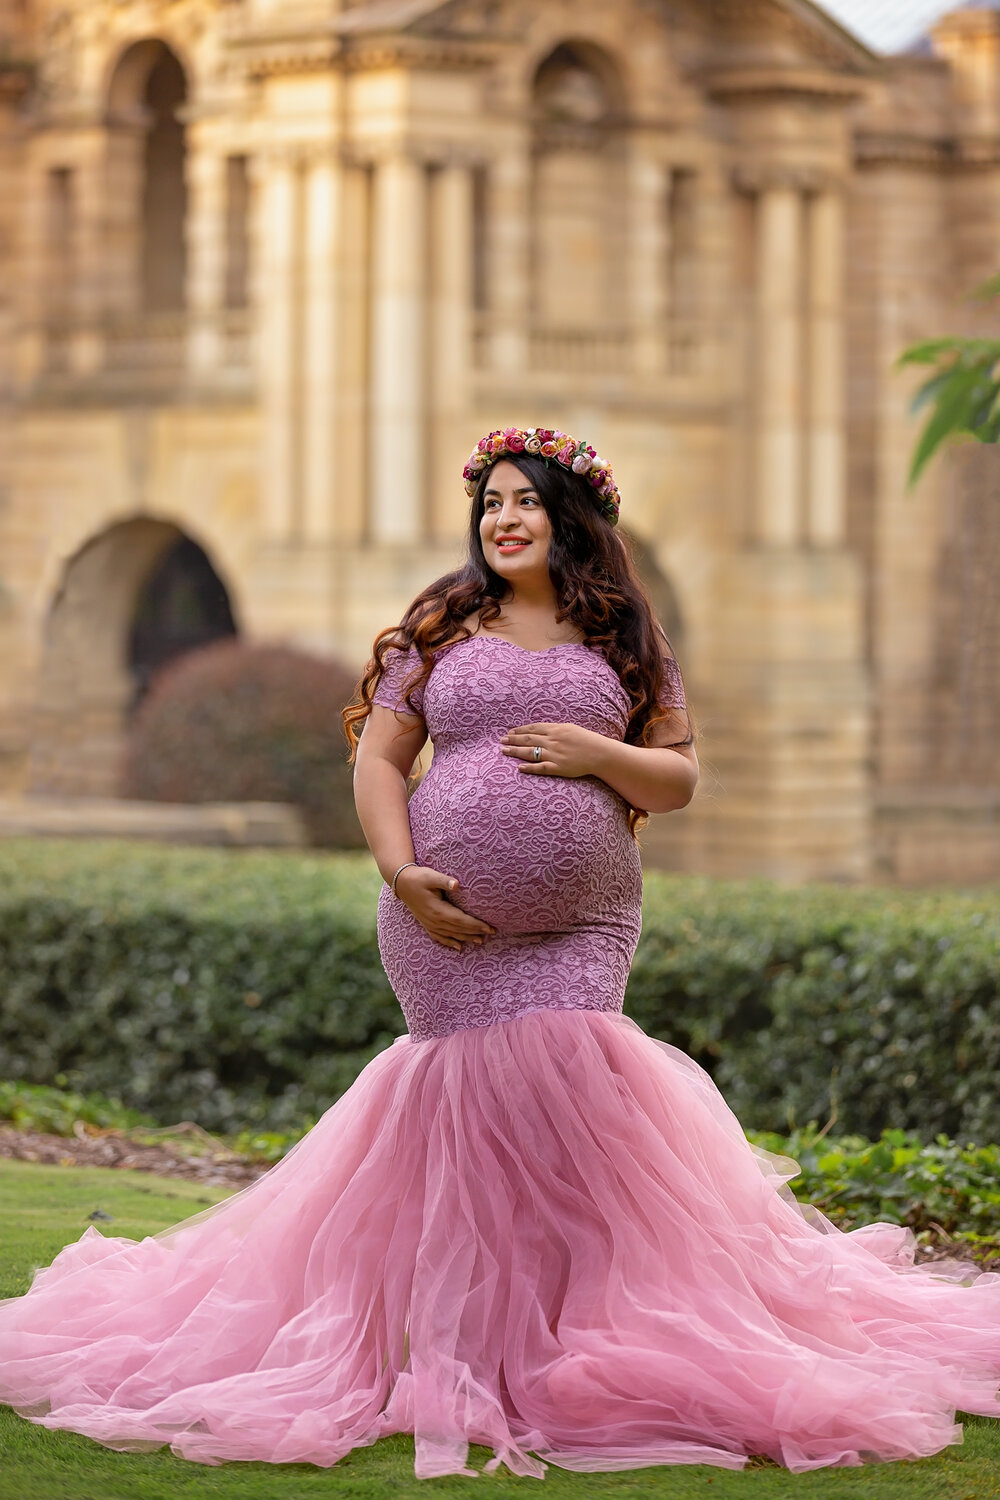 Professional maternity photography Leeds, Bradford, York, Harrogate, Wakefield: beautiful expecting mum in a stunning log gown posing for a pregnancy picture in Bradford, West Yorkshire